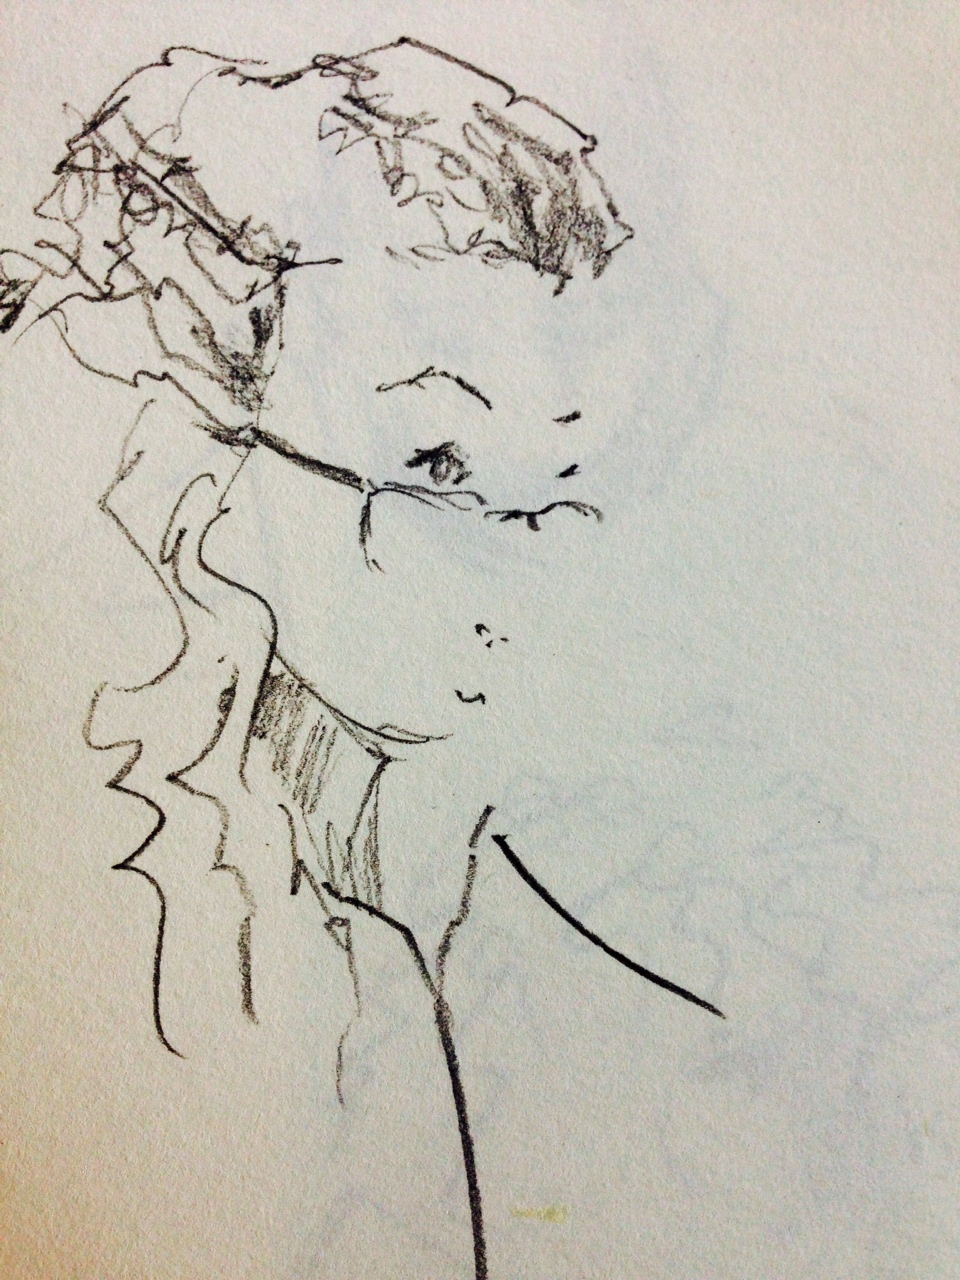 Sketch of a woman with glasses